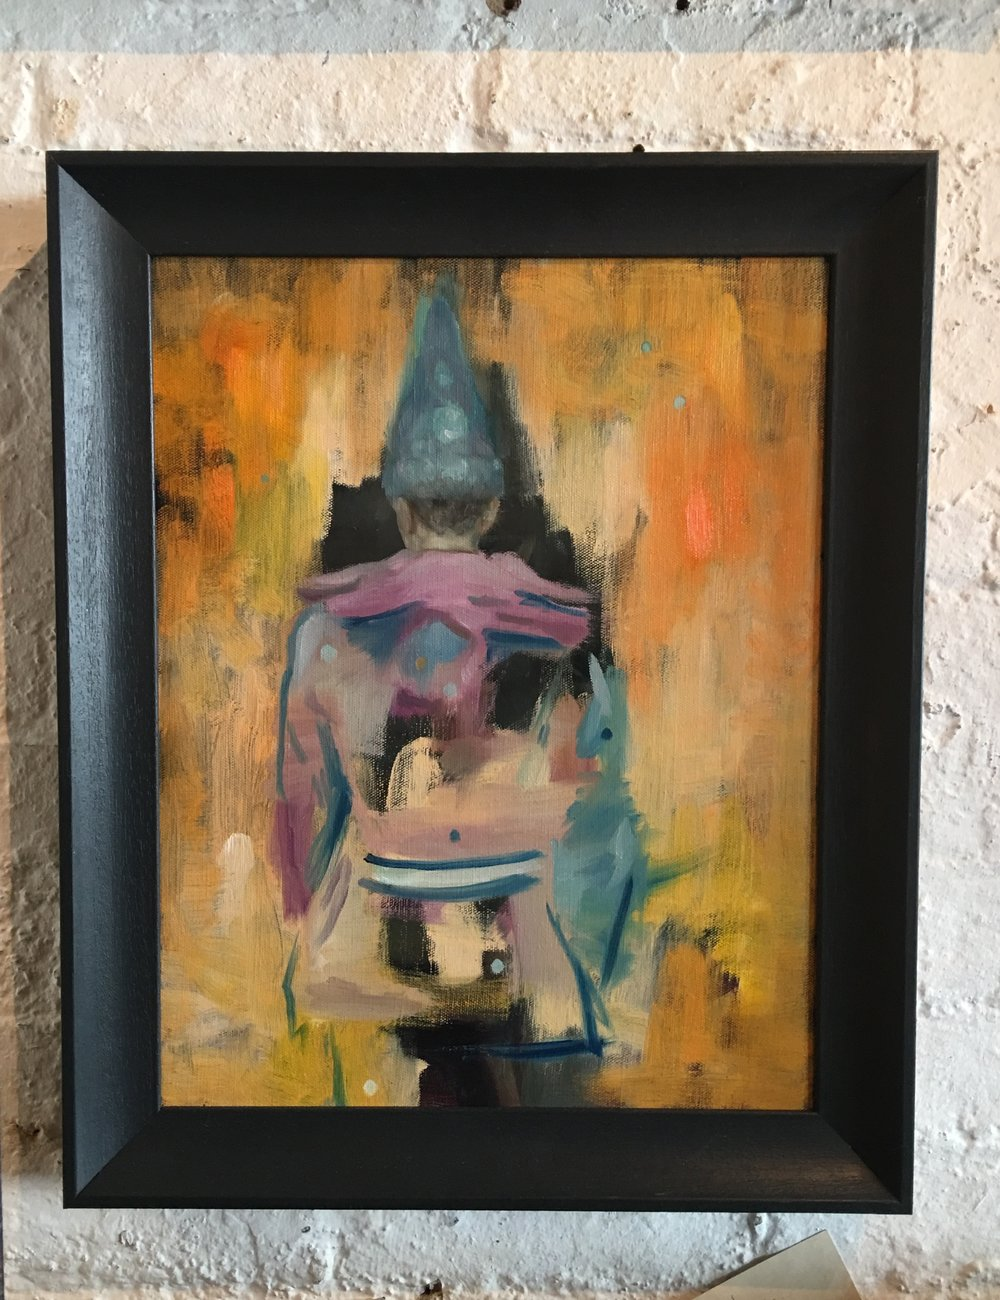 - SEPTEMBER 2016 - Ongoing displayA selection of my paintings are currently on show at Mccully & Crane Art, Rye, East Sussex.See www.mccullyandcrane.comfor more info.